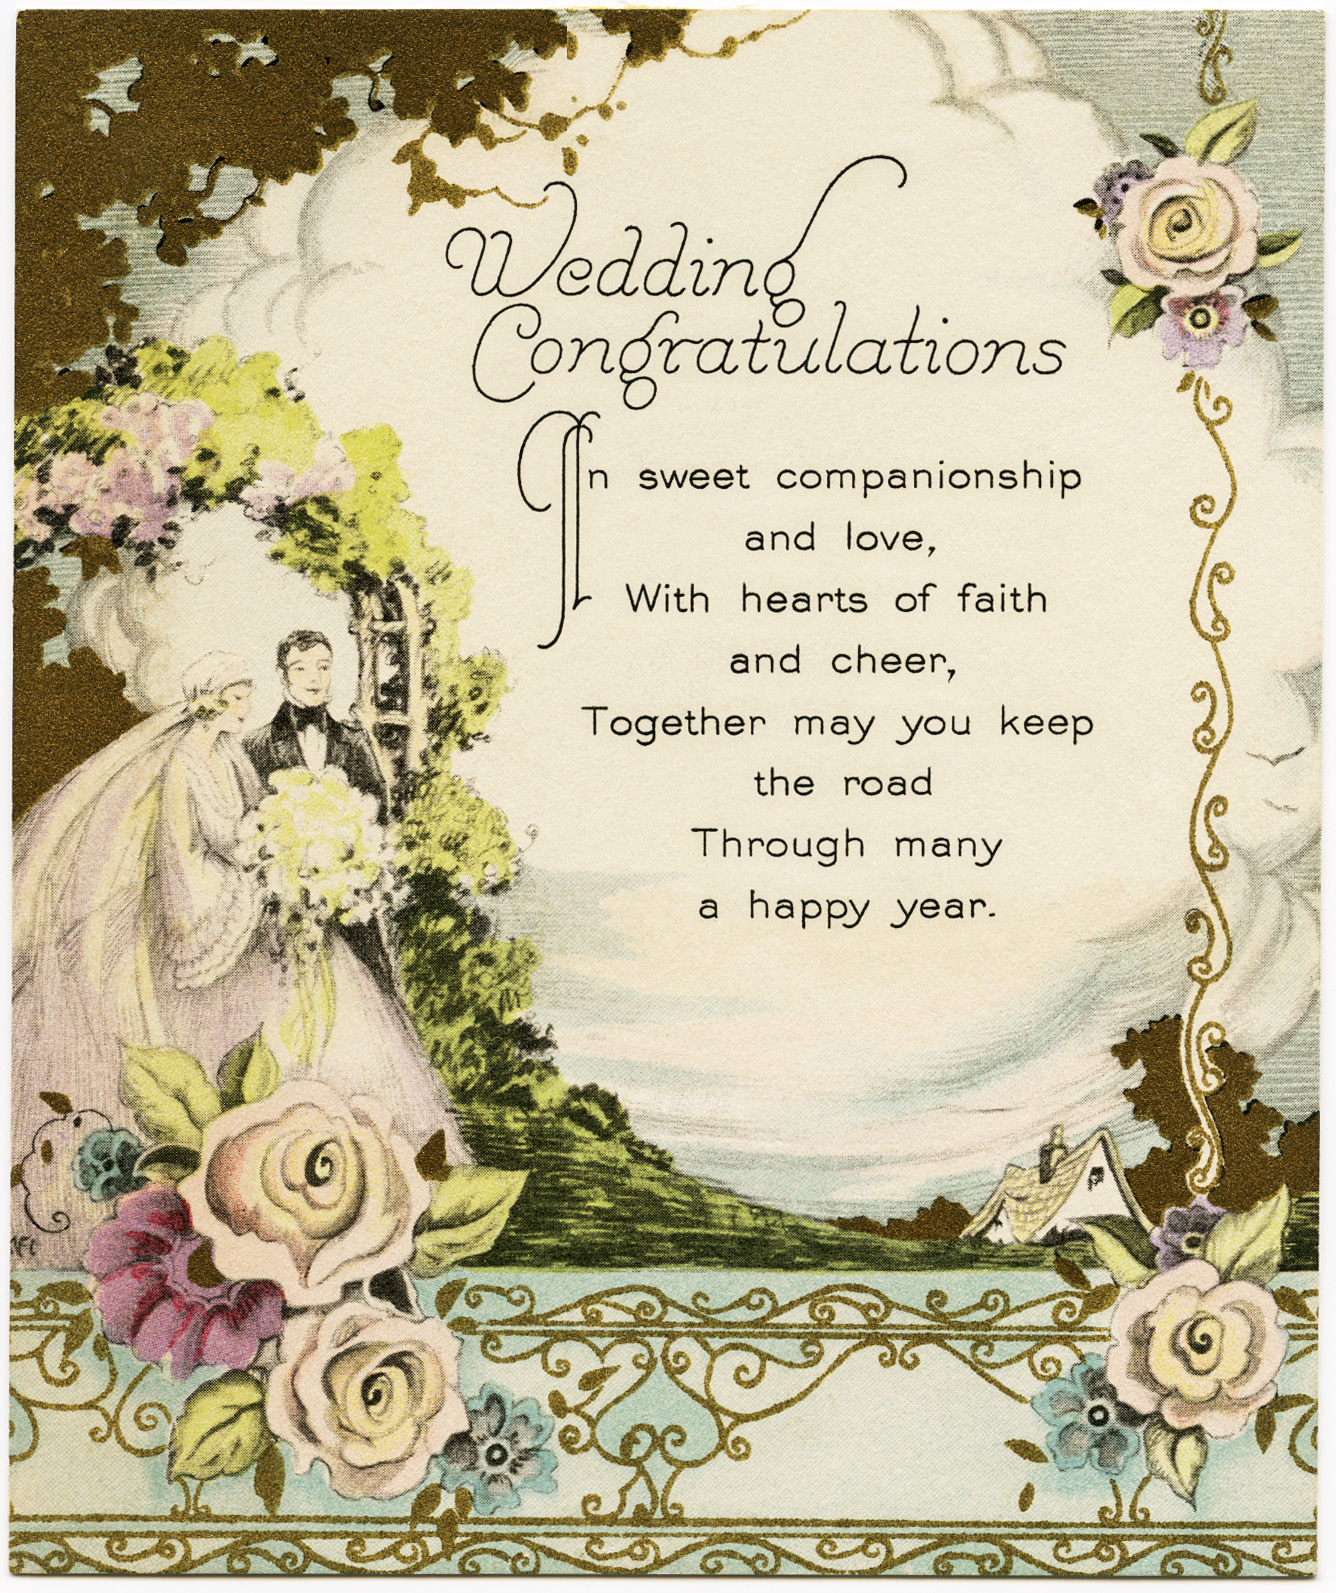 Wedding Congratulations Cards Free Download Veenvendelbosch